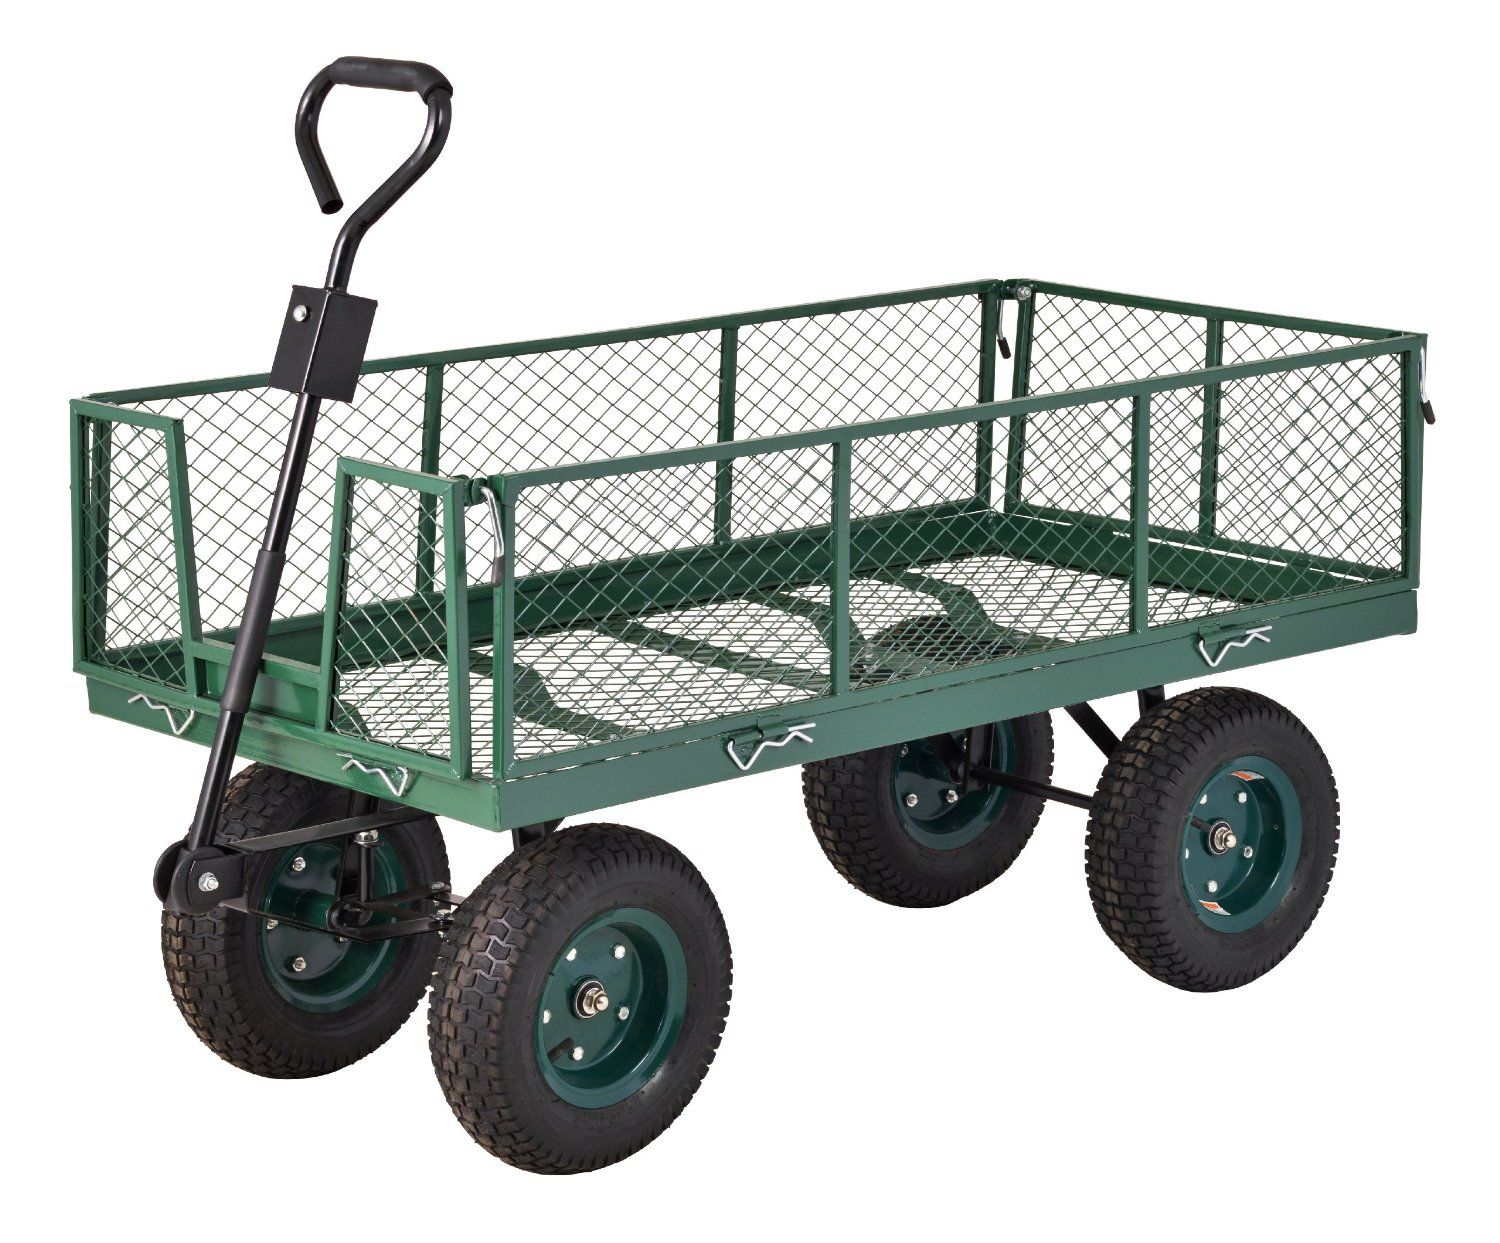 Attractive Sandusky Lee CW Steel Crate Wagon, Green, 1000 Pound Load Capacity, 27